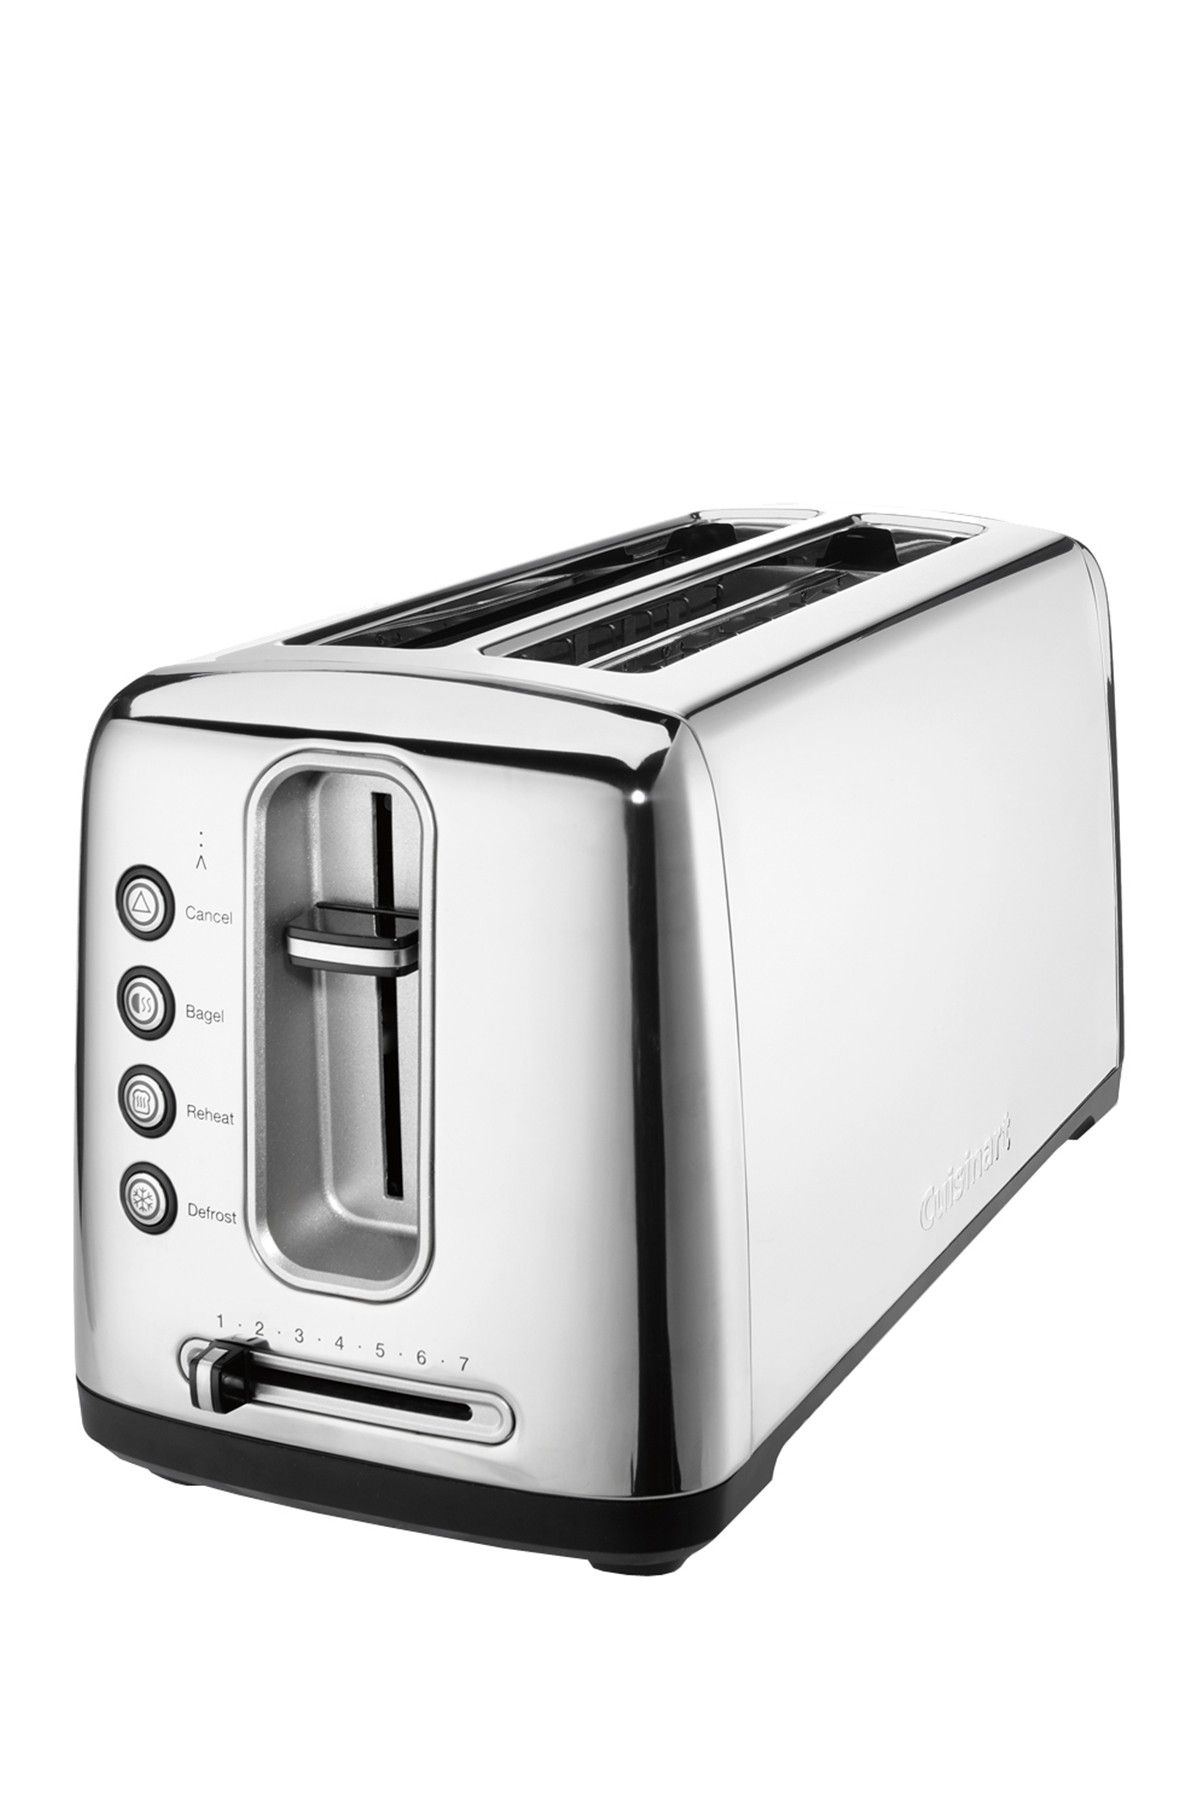 Cuisinart 2-slice extruded aluminum long-slot toaster #cpt-2000 apollo god of the sun slot